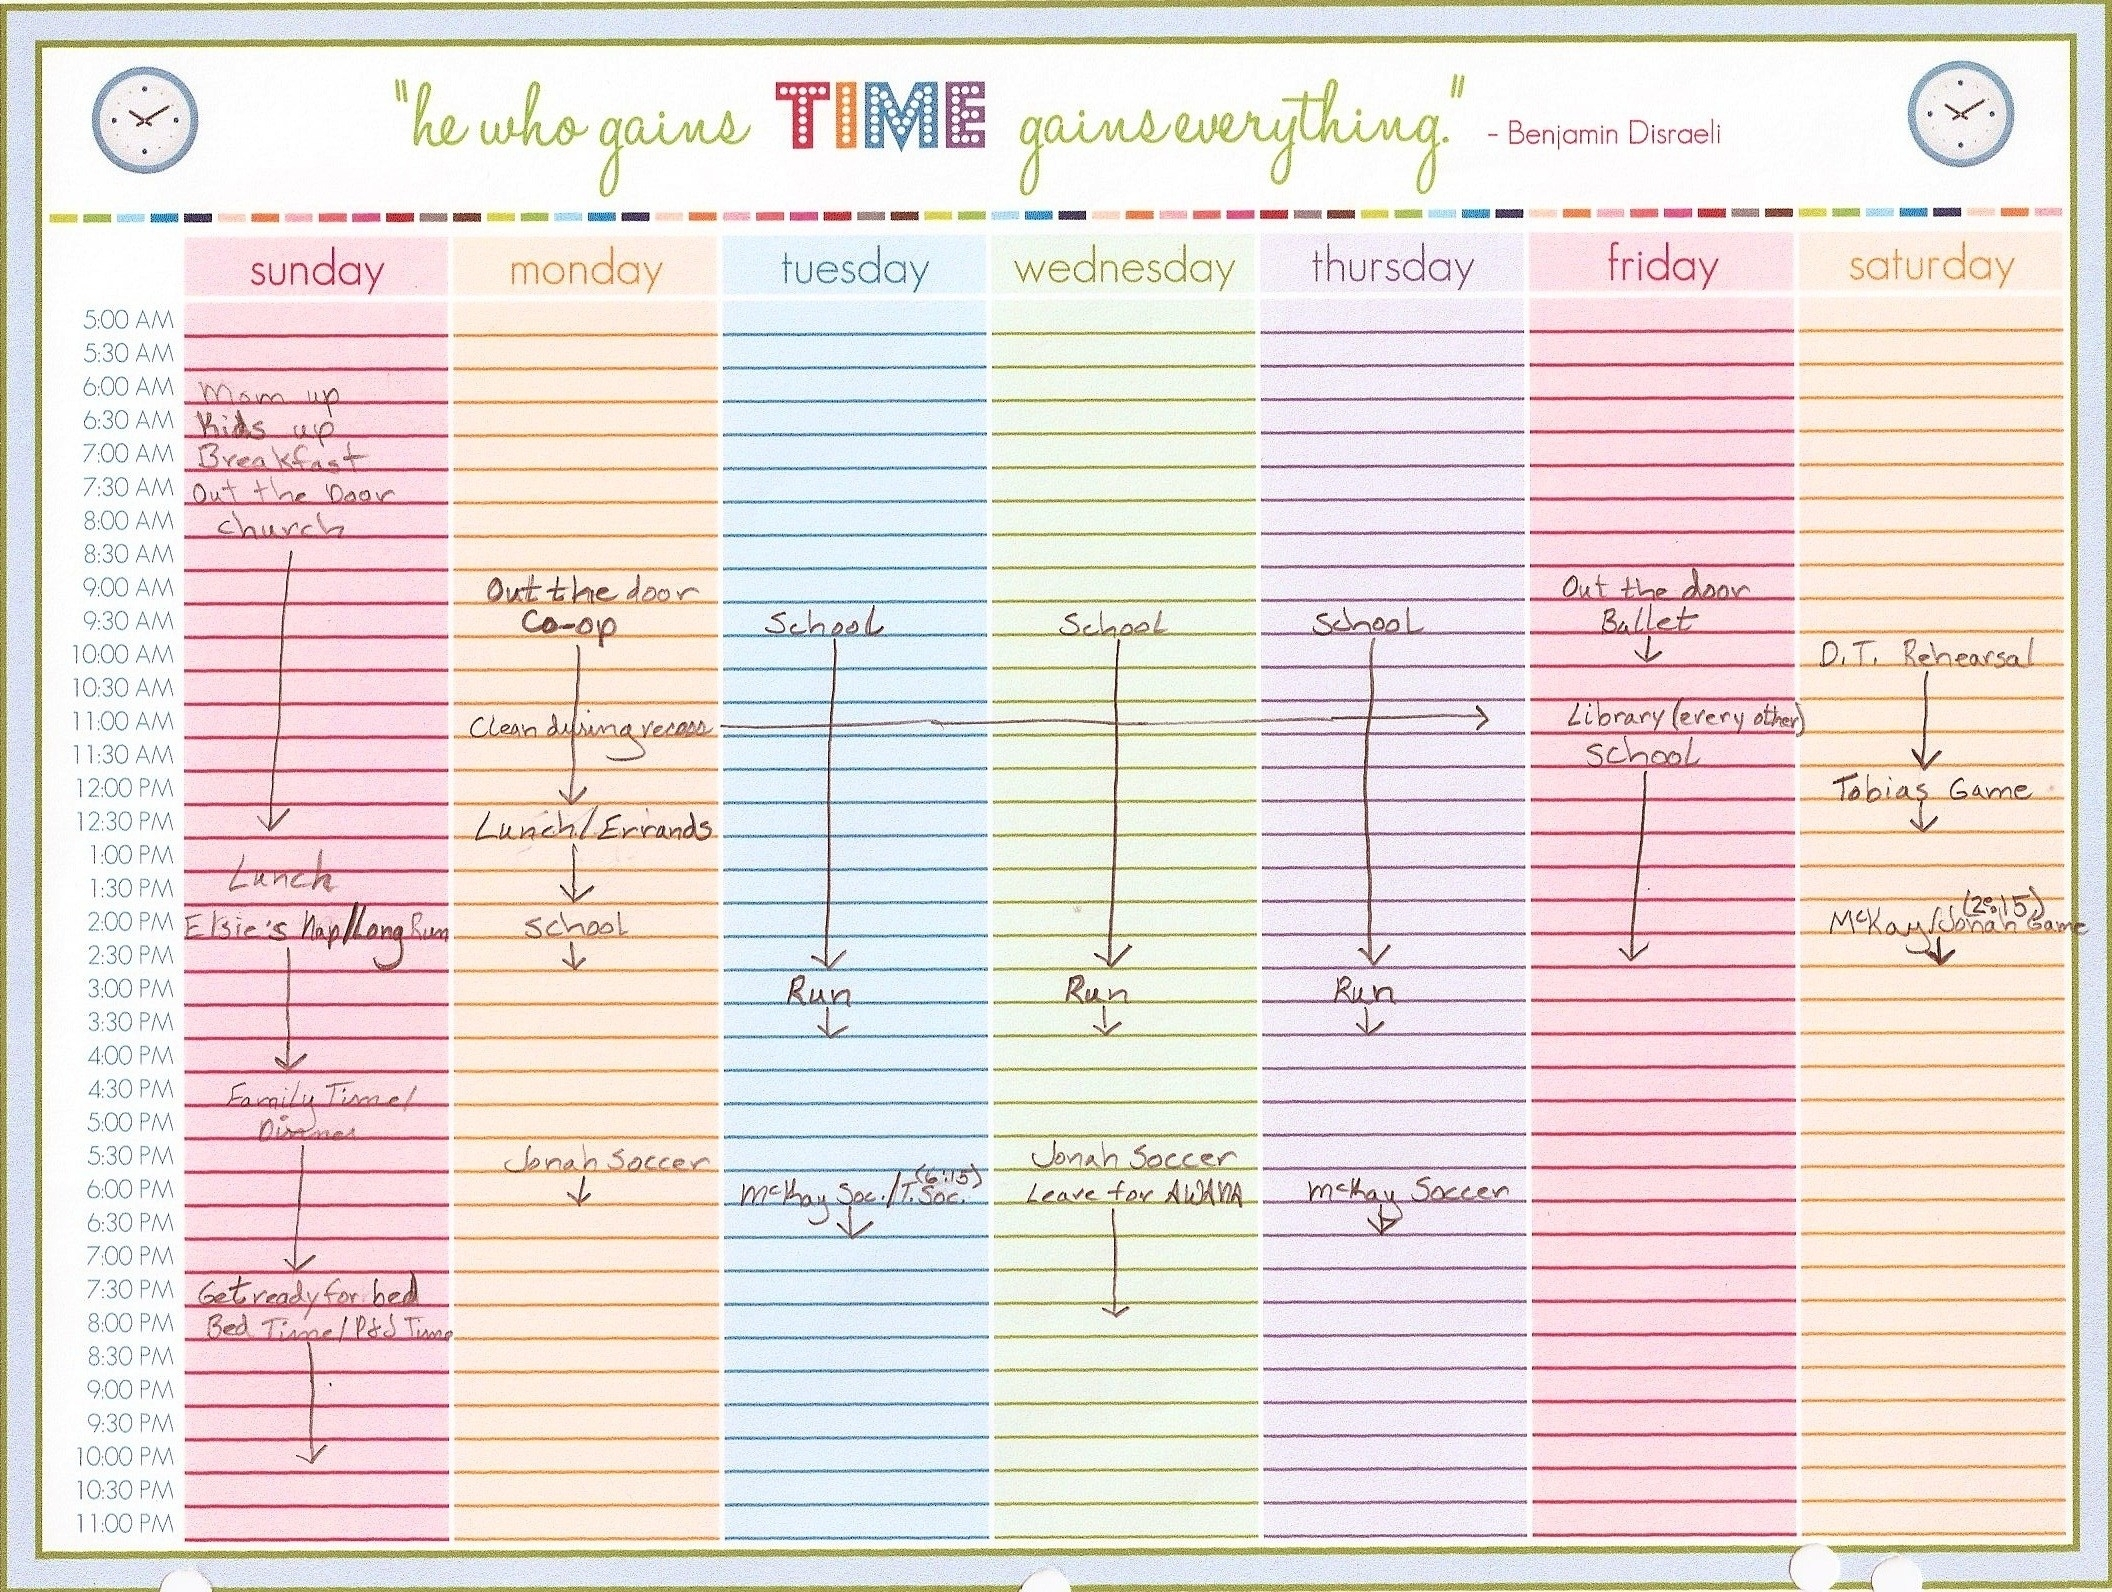 Printable Daily Calendar With Time Slots | Printable Calendar April pertaining to Blank Schedule Template With Time Slots